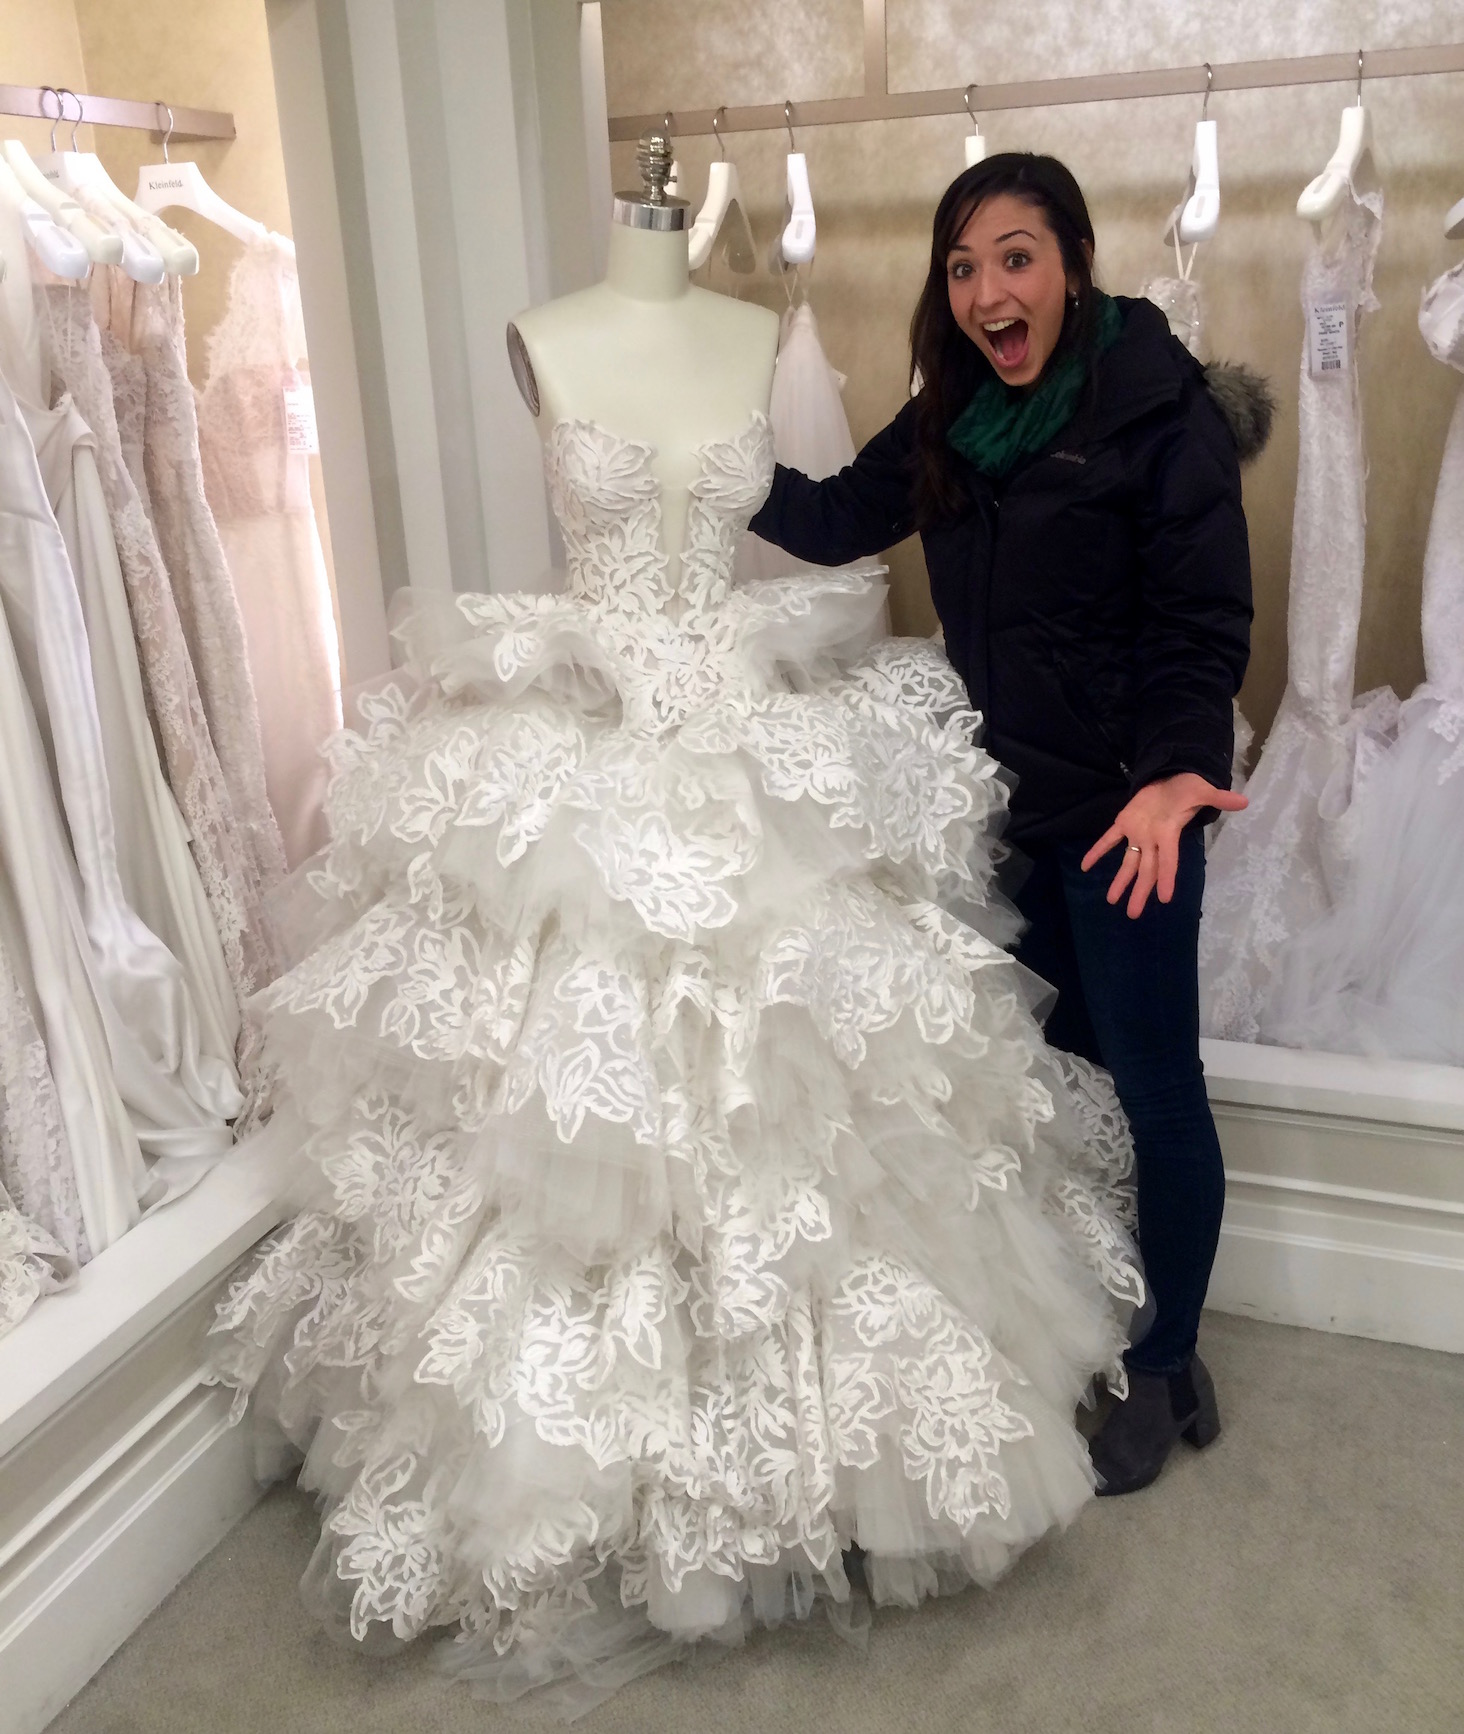 Jaded New Yorkers Experience Kleinfeld Bridal (the One